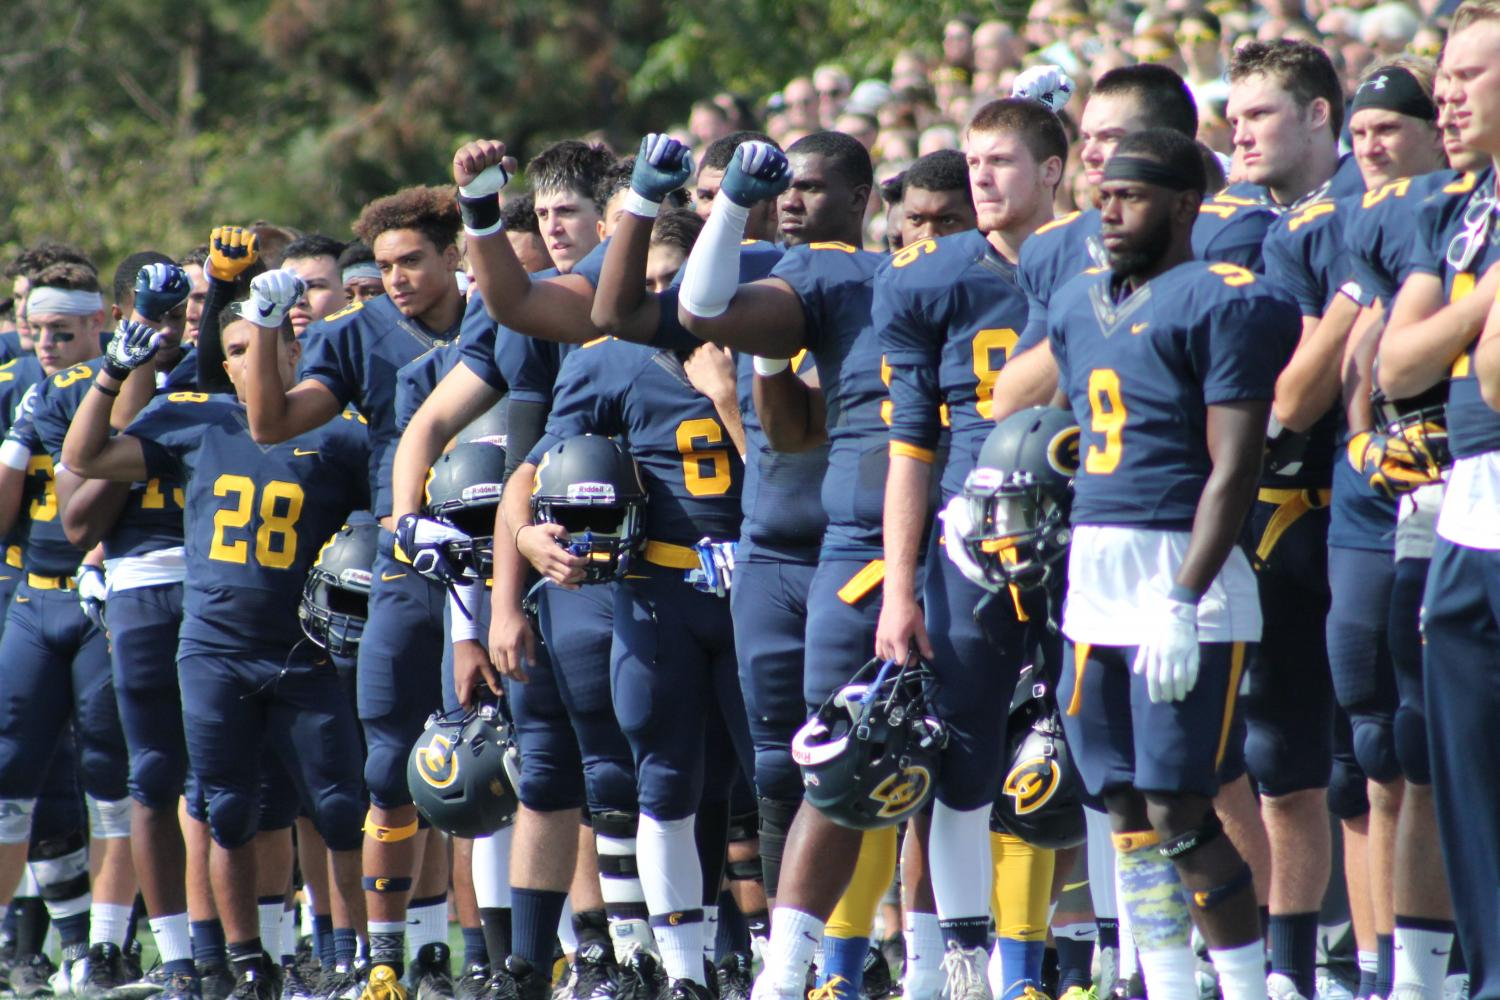 Blugold football players 'raise a fist' for injustice